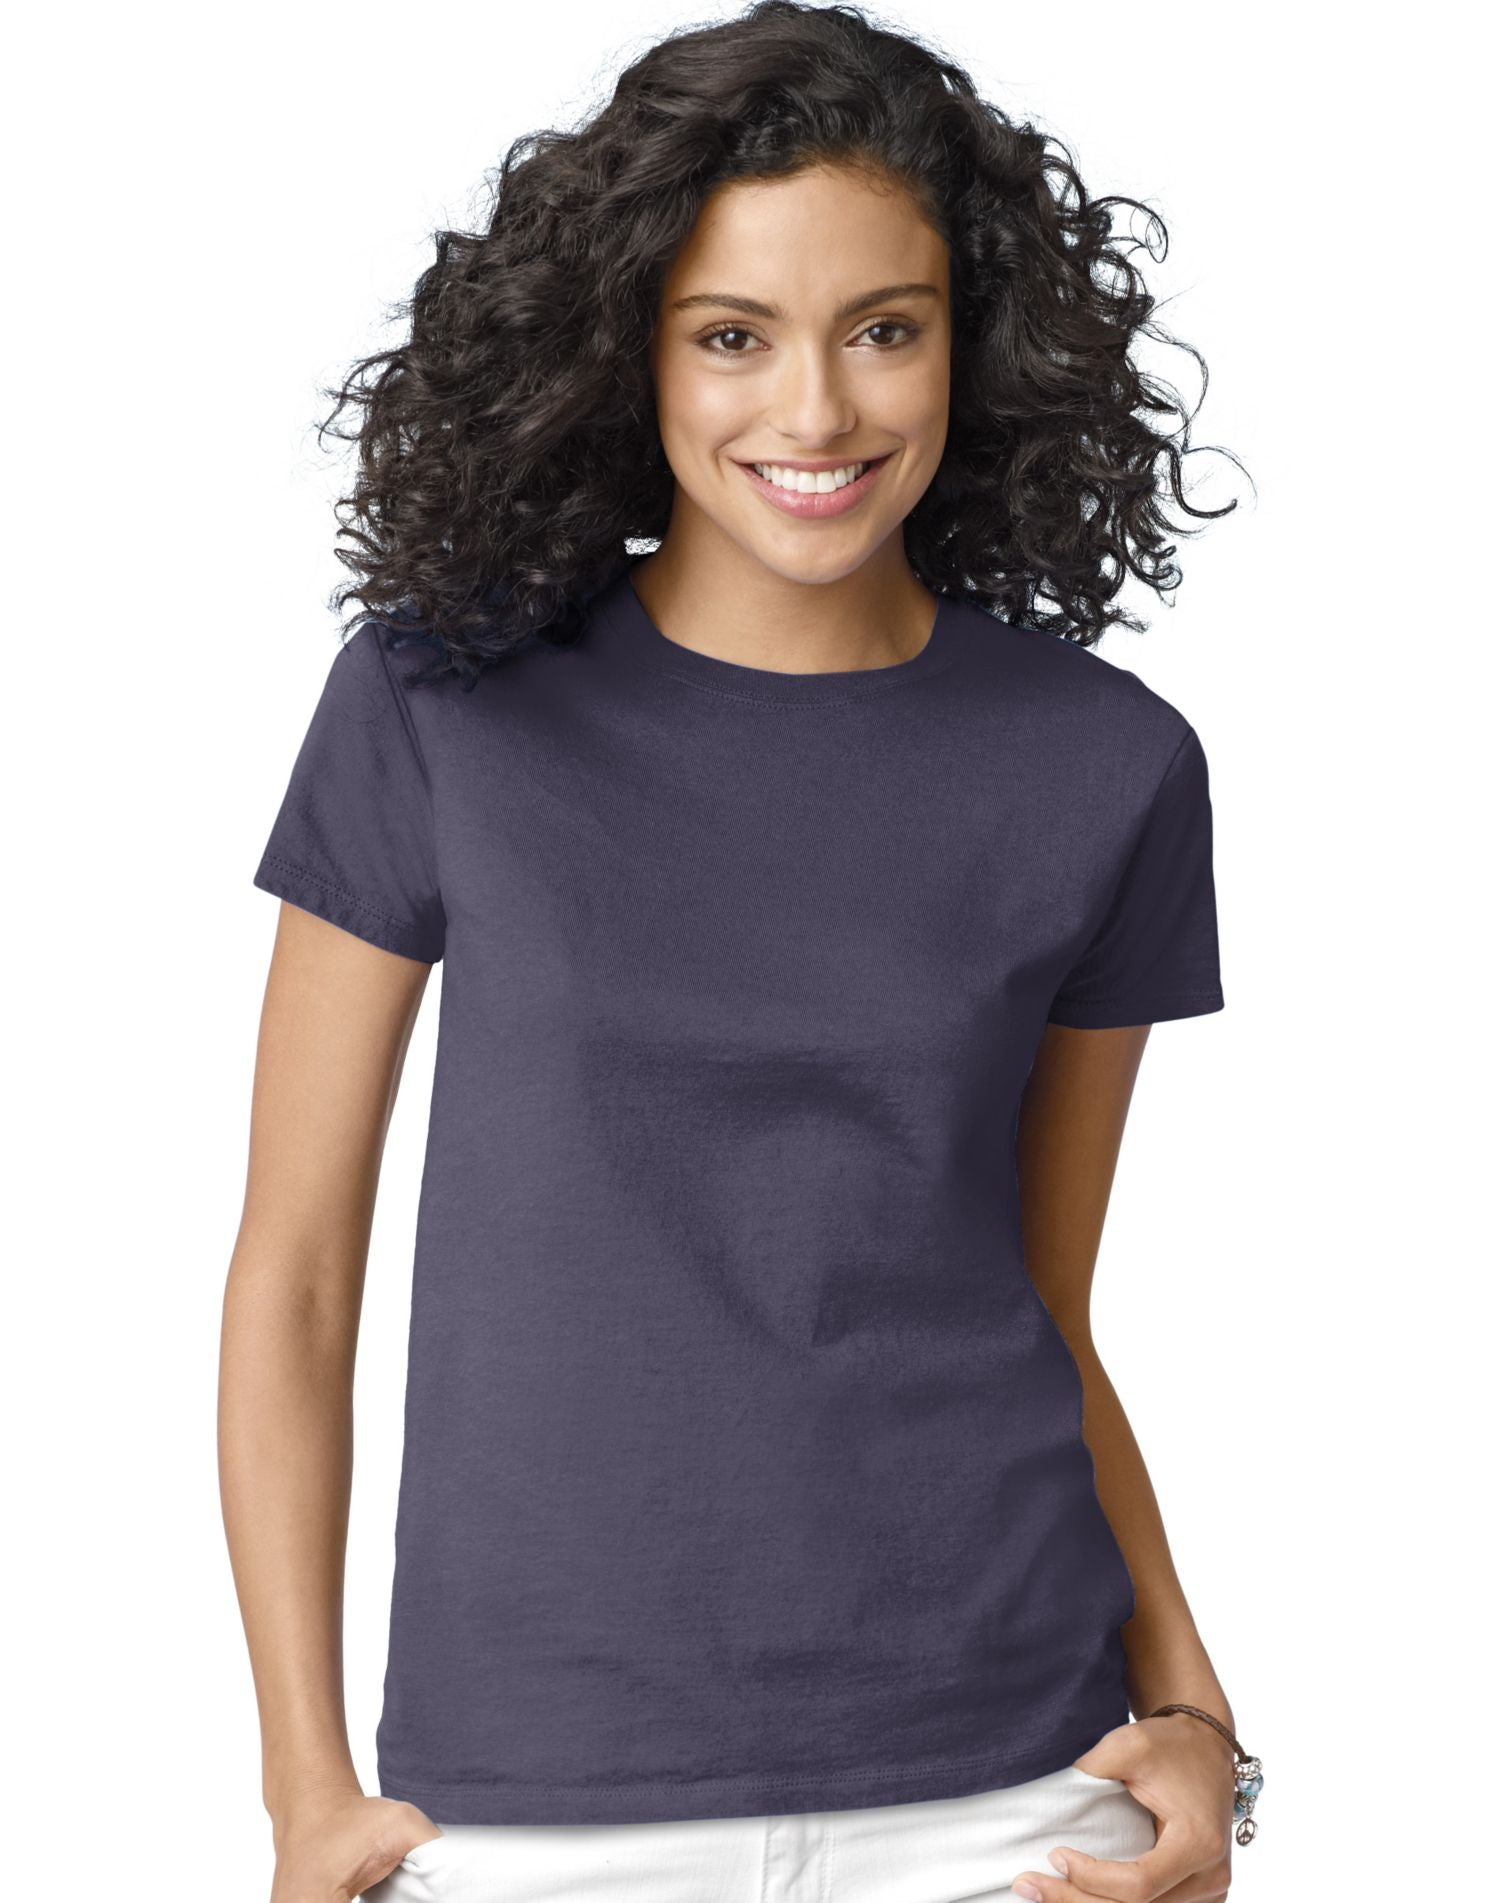 48836ff8f8 5680 - Hanes Women s Relax Fit Jersey Tee 5.2 oz – NY Lingerie